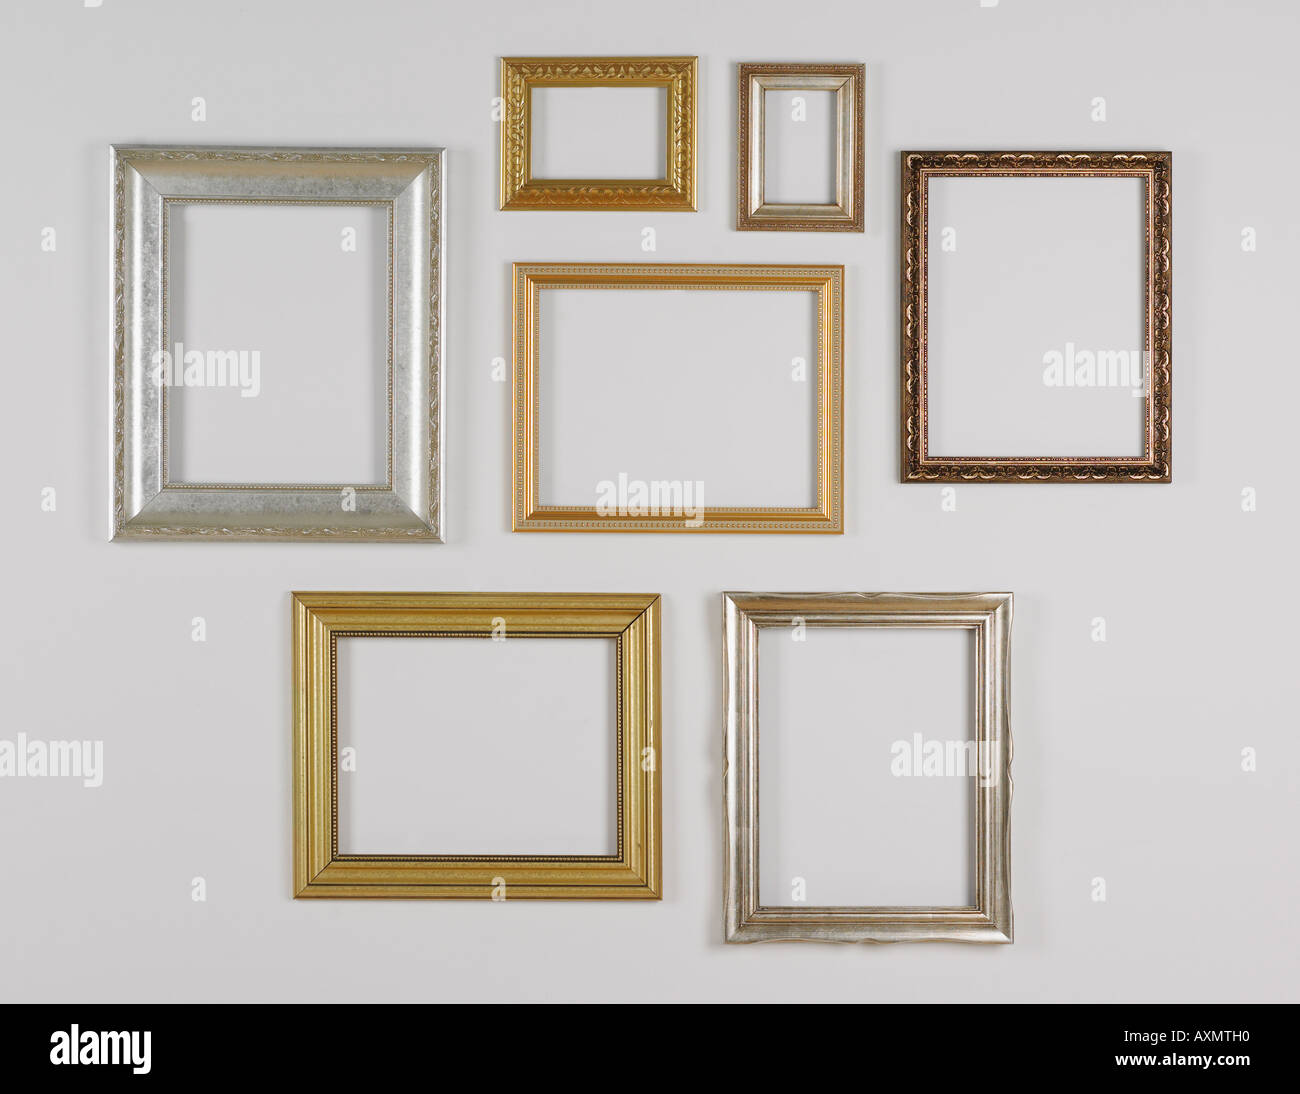 Still life of hanging picture frames without pictures Stock Photo ...